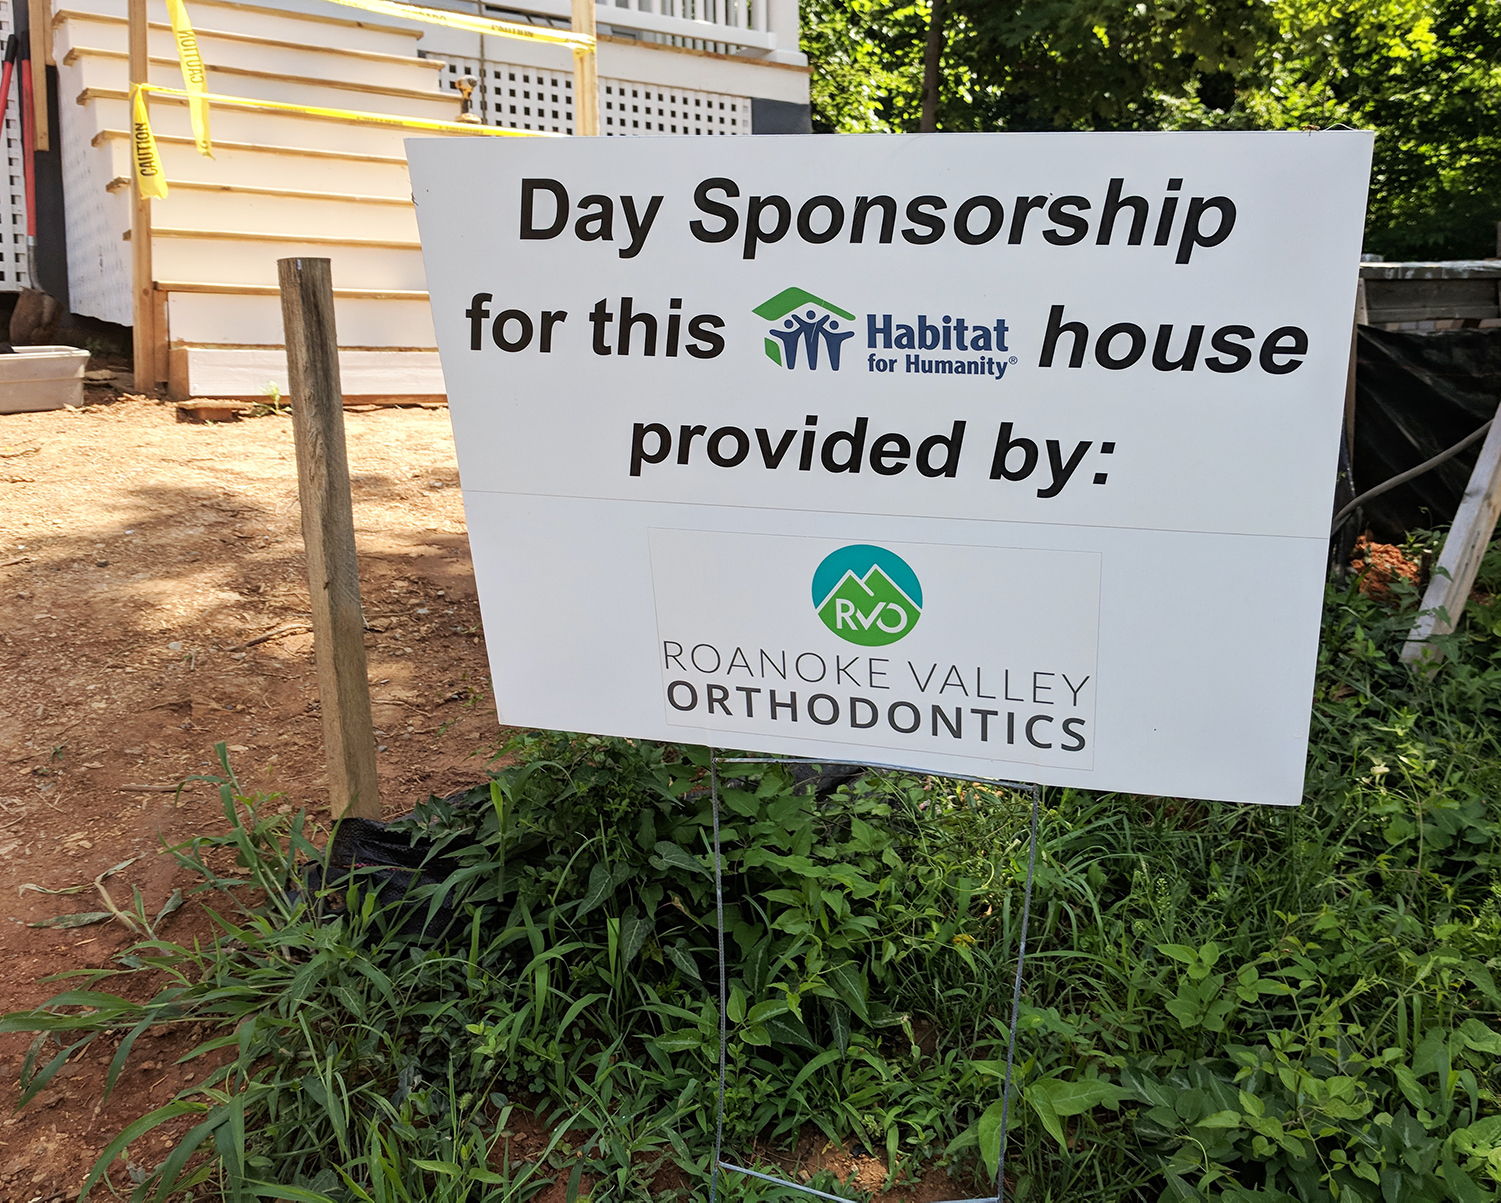 Roanoke Valley Orthodontics